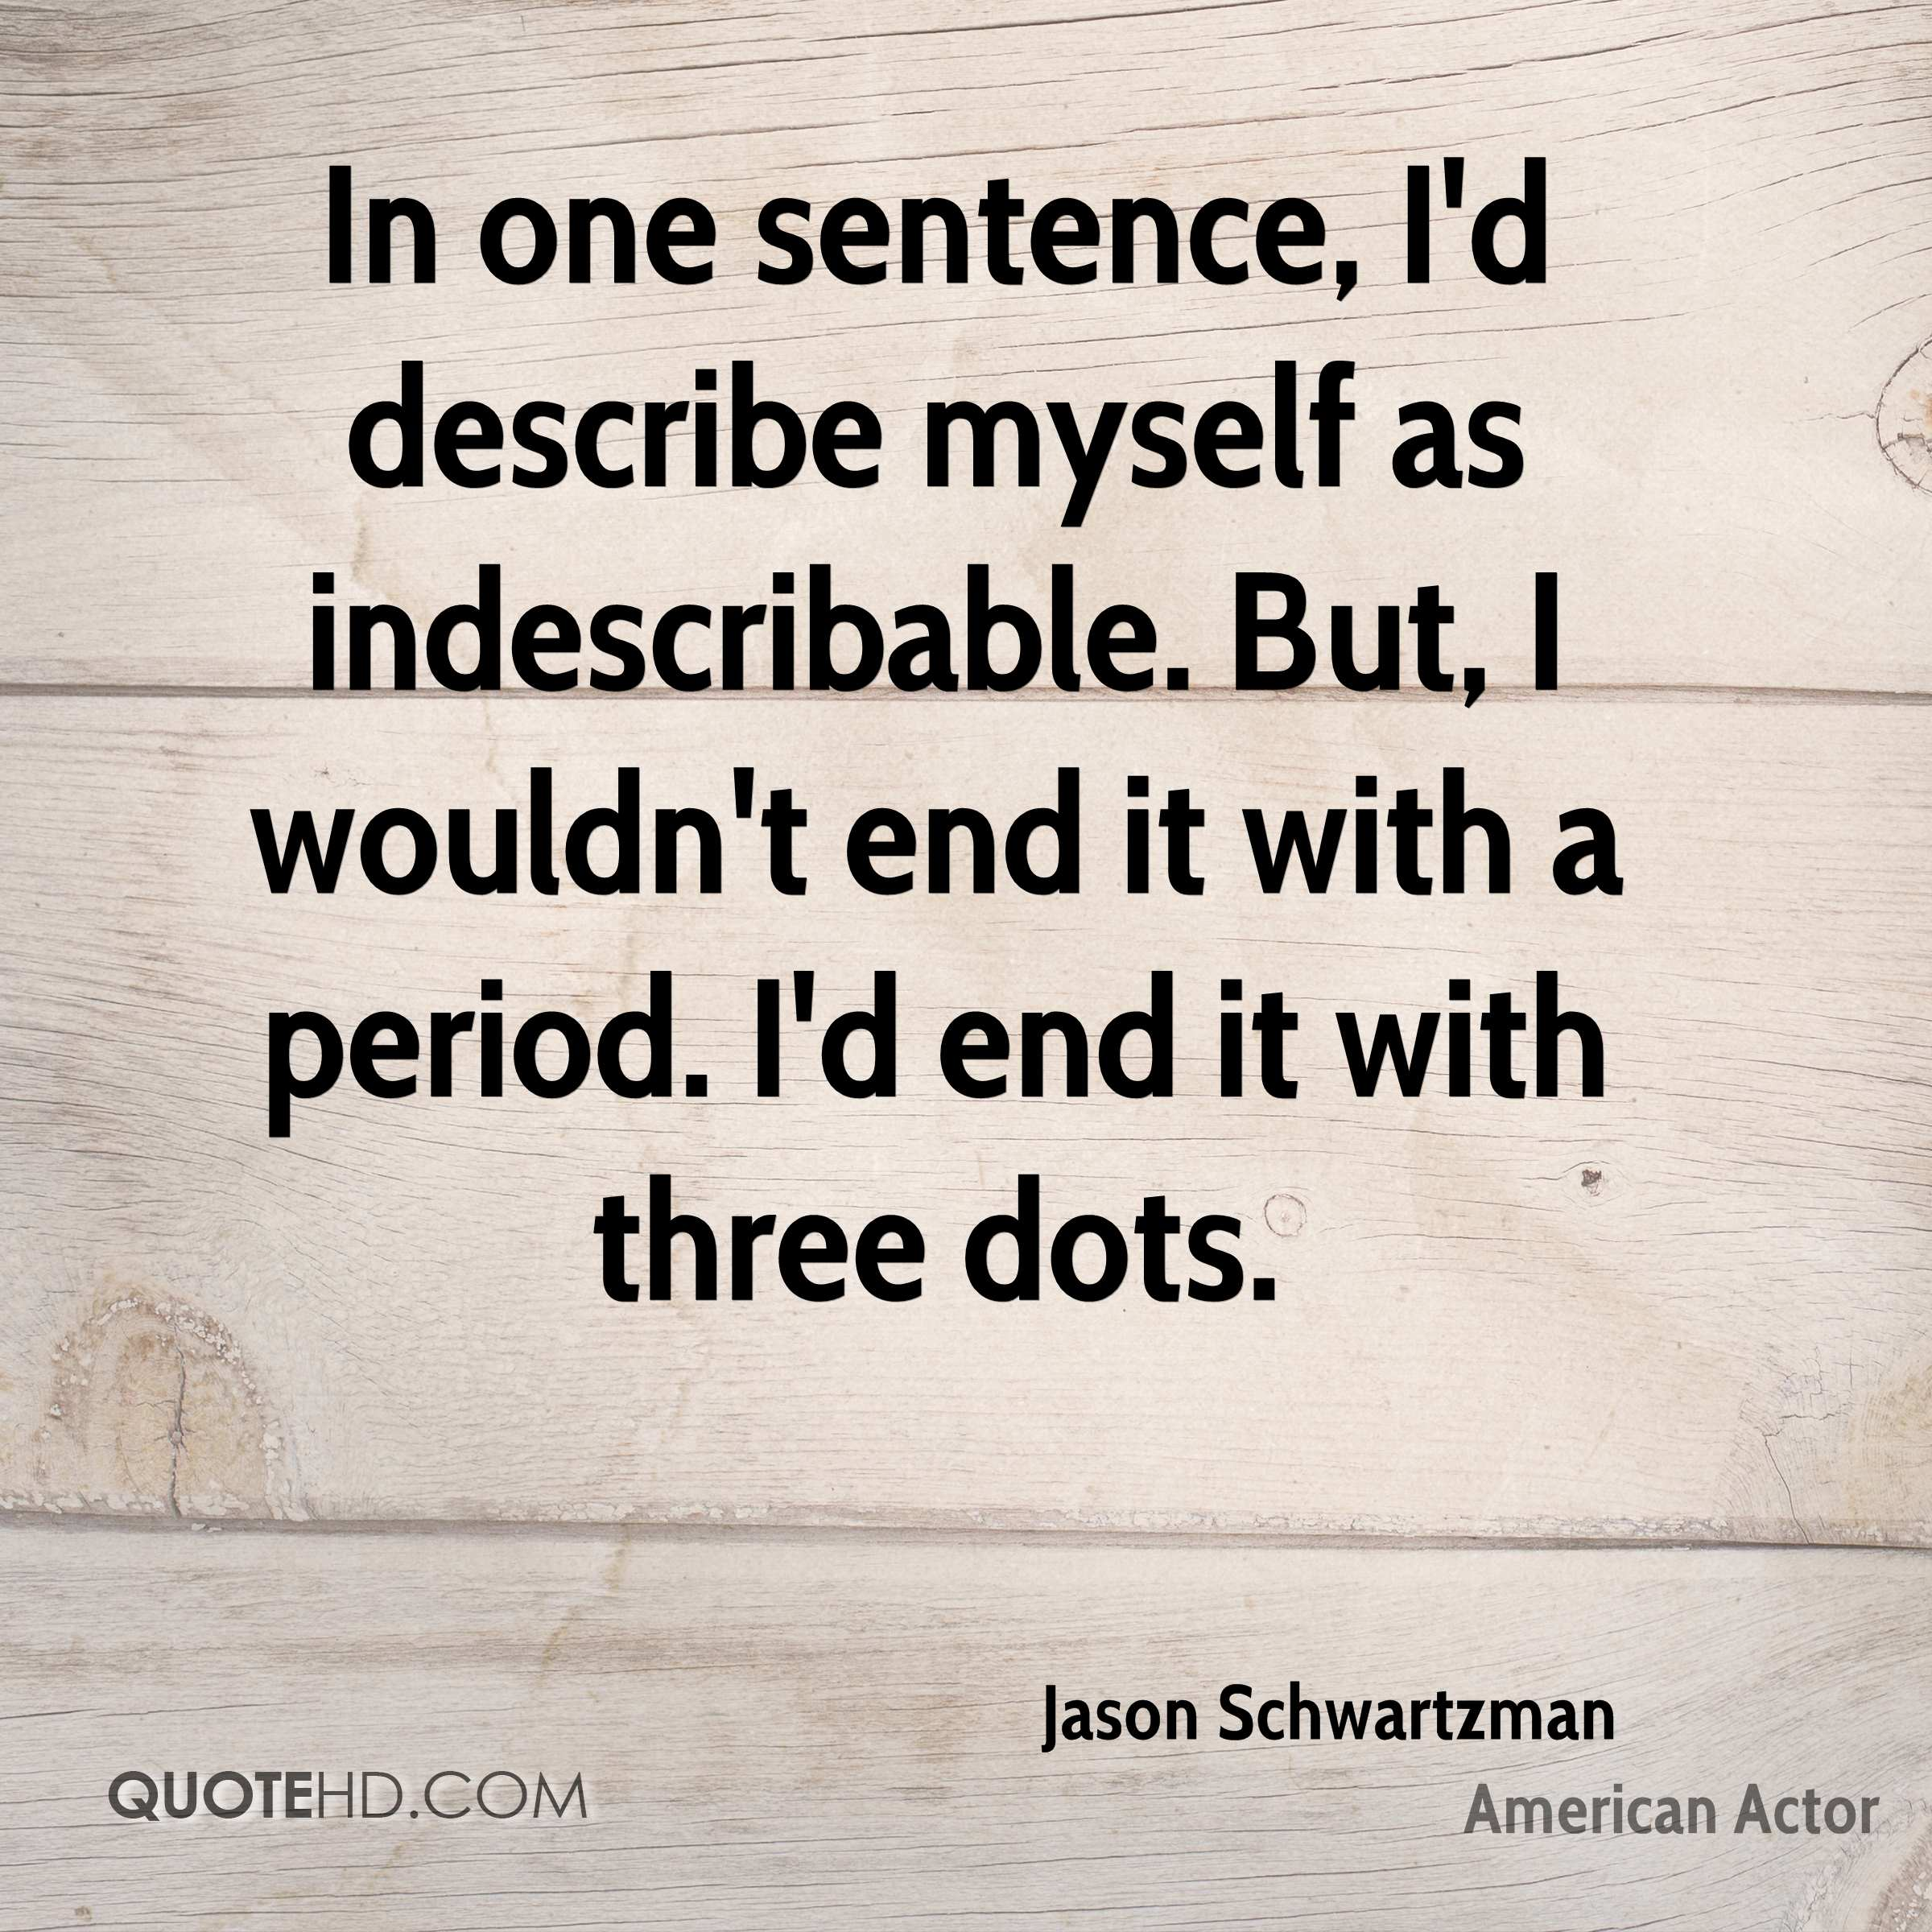 In one sentence, I'd describe myself as indescribable. But, I wouldn't end it with a period. I'd end it with three dots.